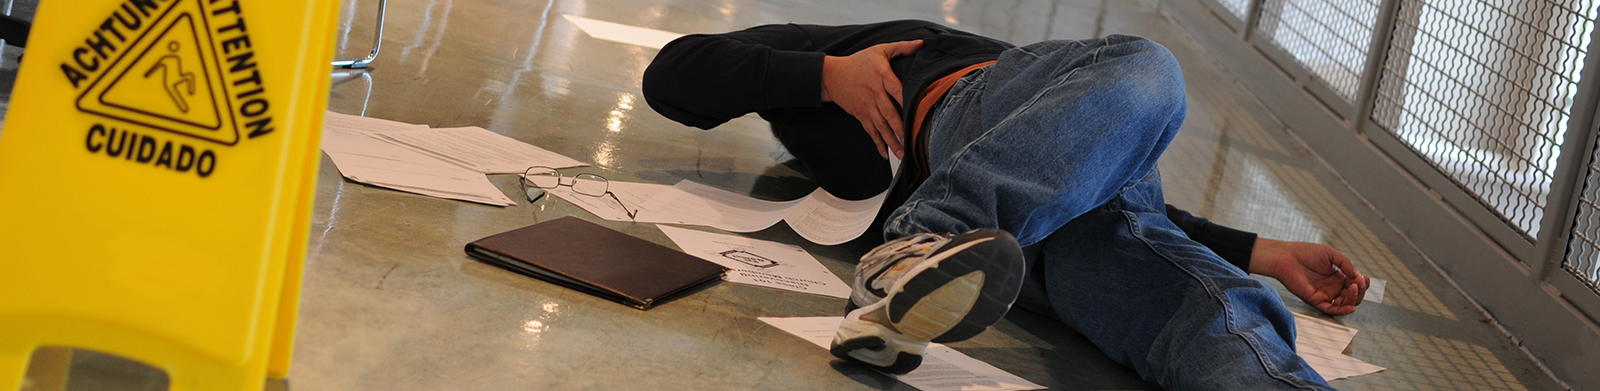 When is a slip and fall claim valid?